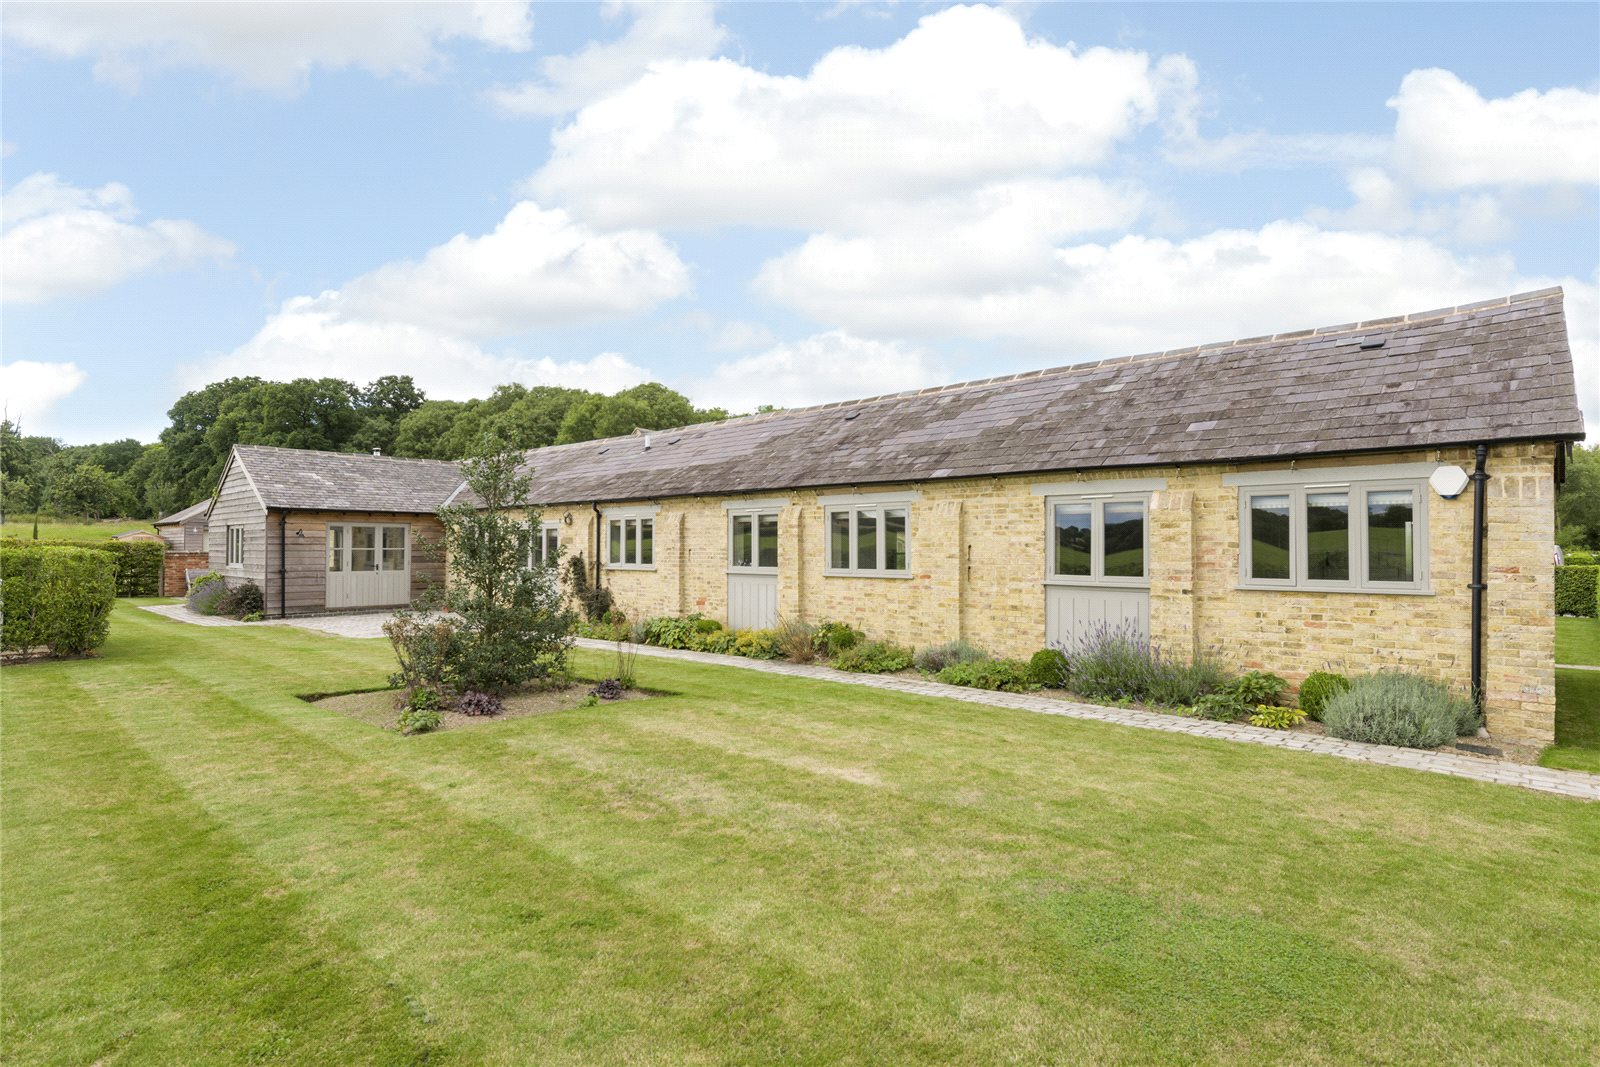 Additional photo for property listing at Chadshunt, Nr Leamington Spa, South Warwickshire, CV35 England